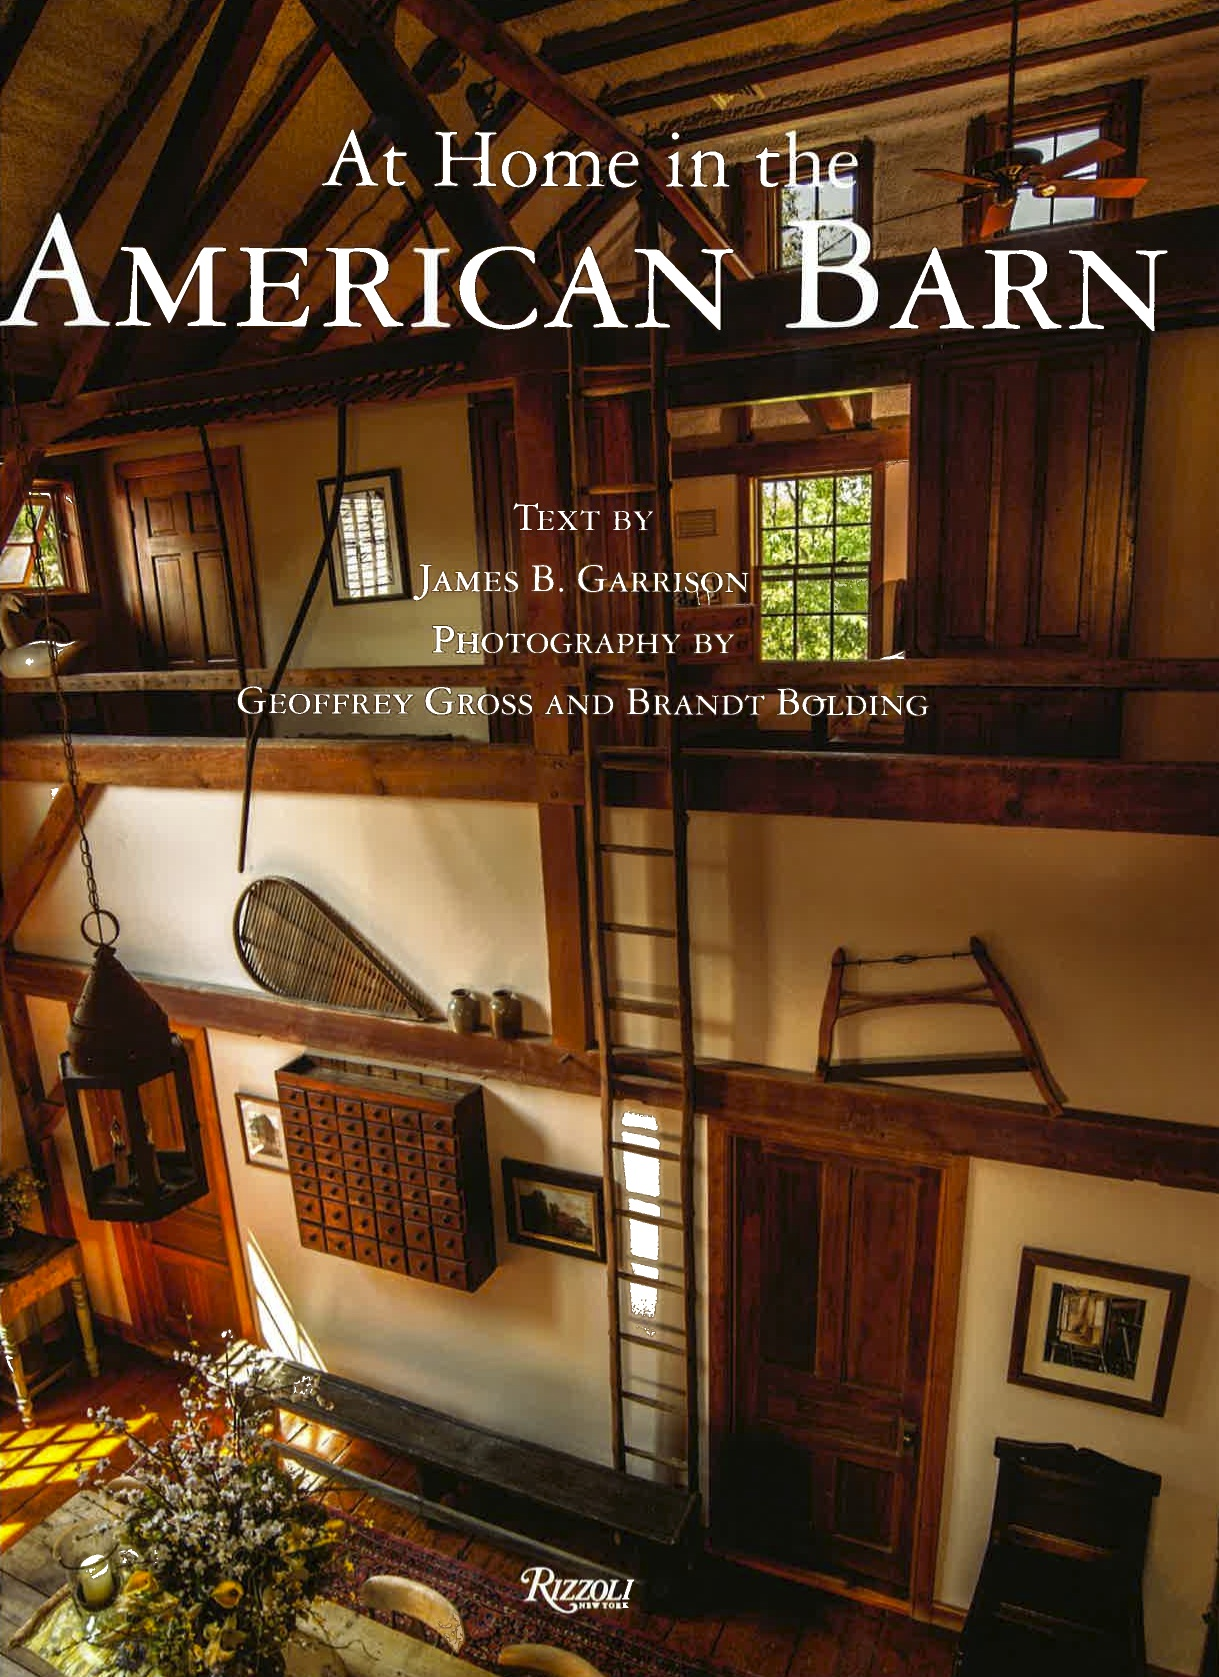 4 at homein the amr barn_001.jpg